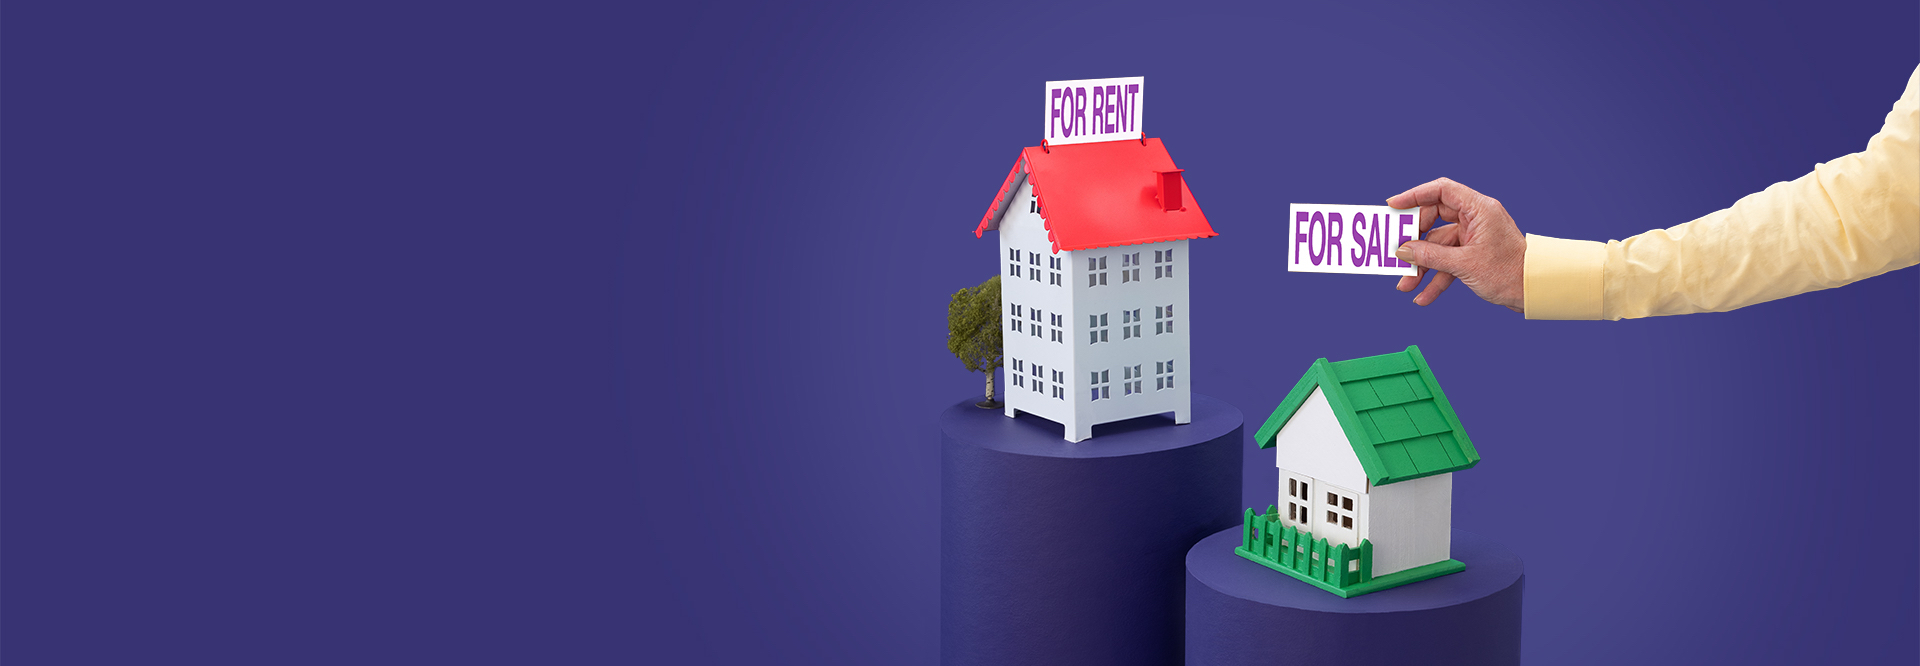 Red miniature house with a For Rent sign, green house with For Sale sign being added